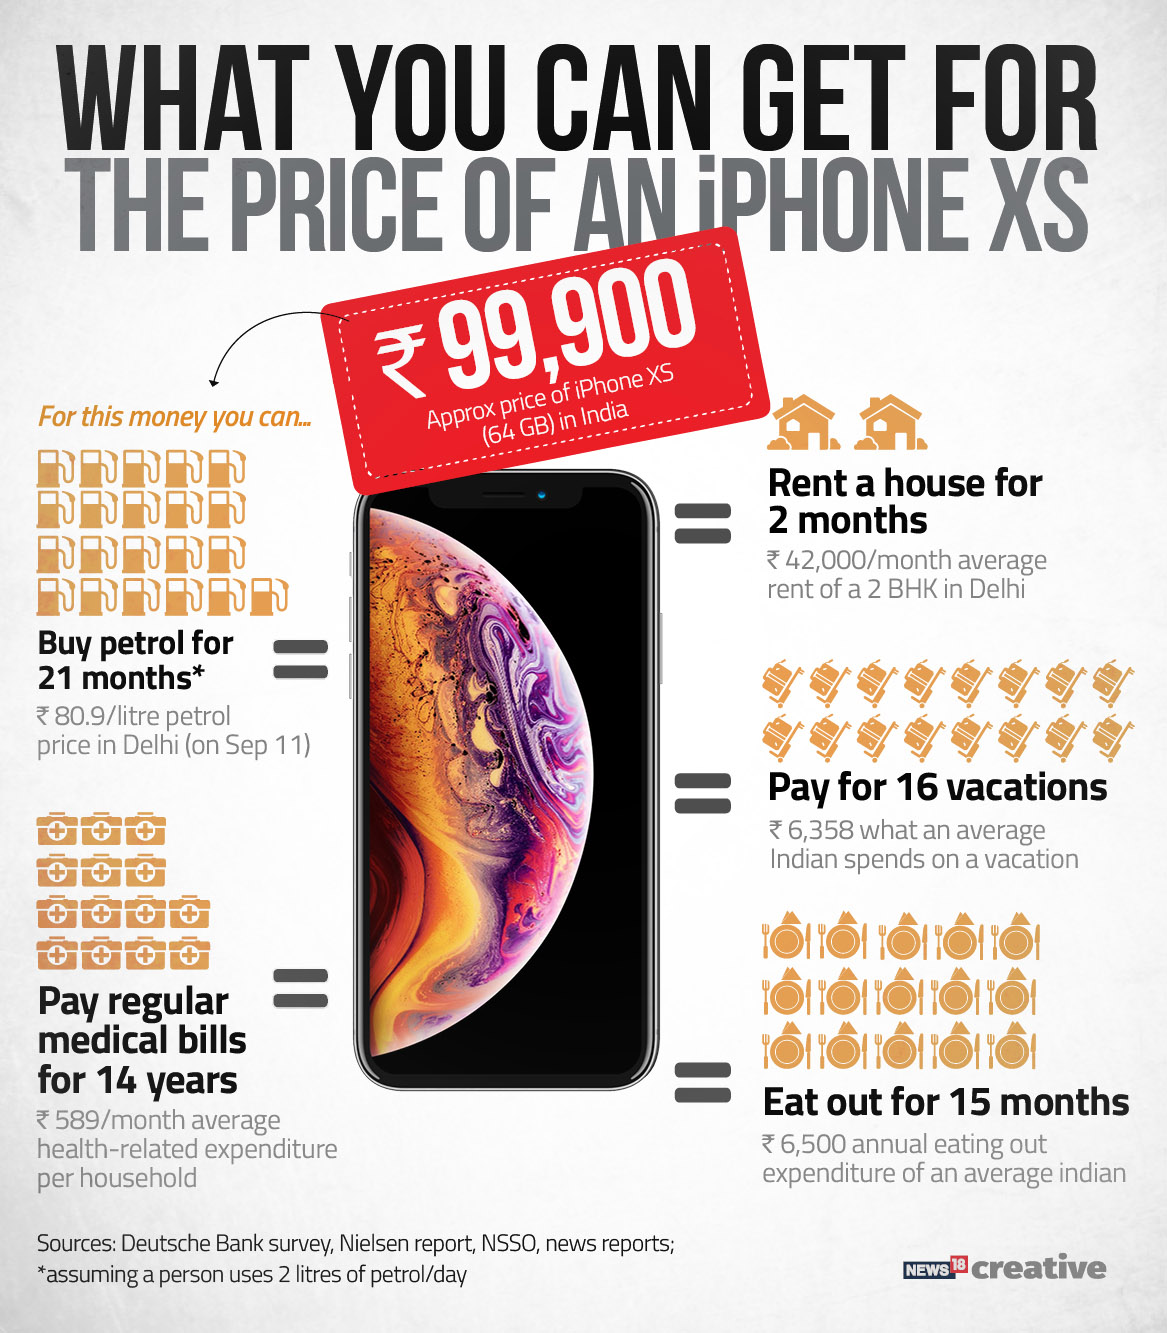 7 Things You Can Do At The price OF IPHONE XS & XR